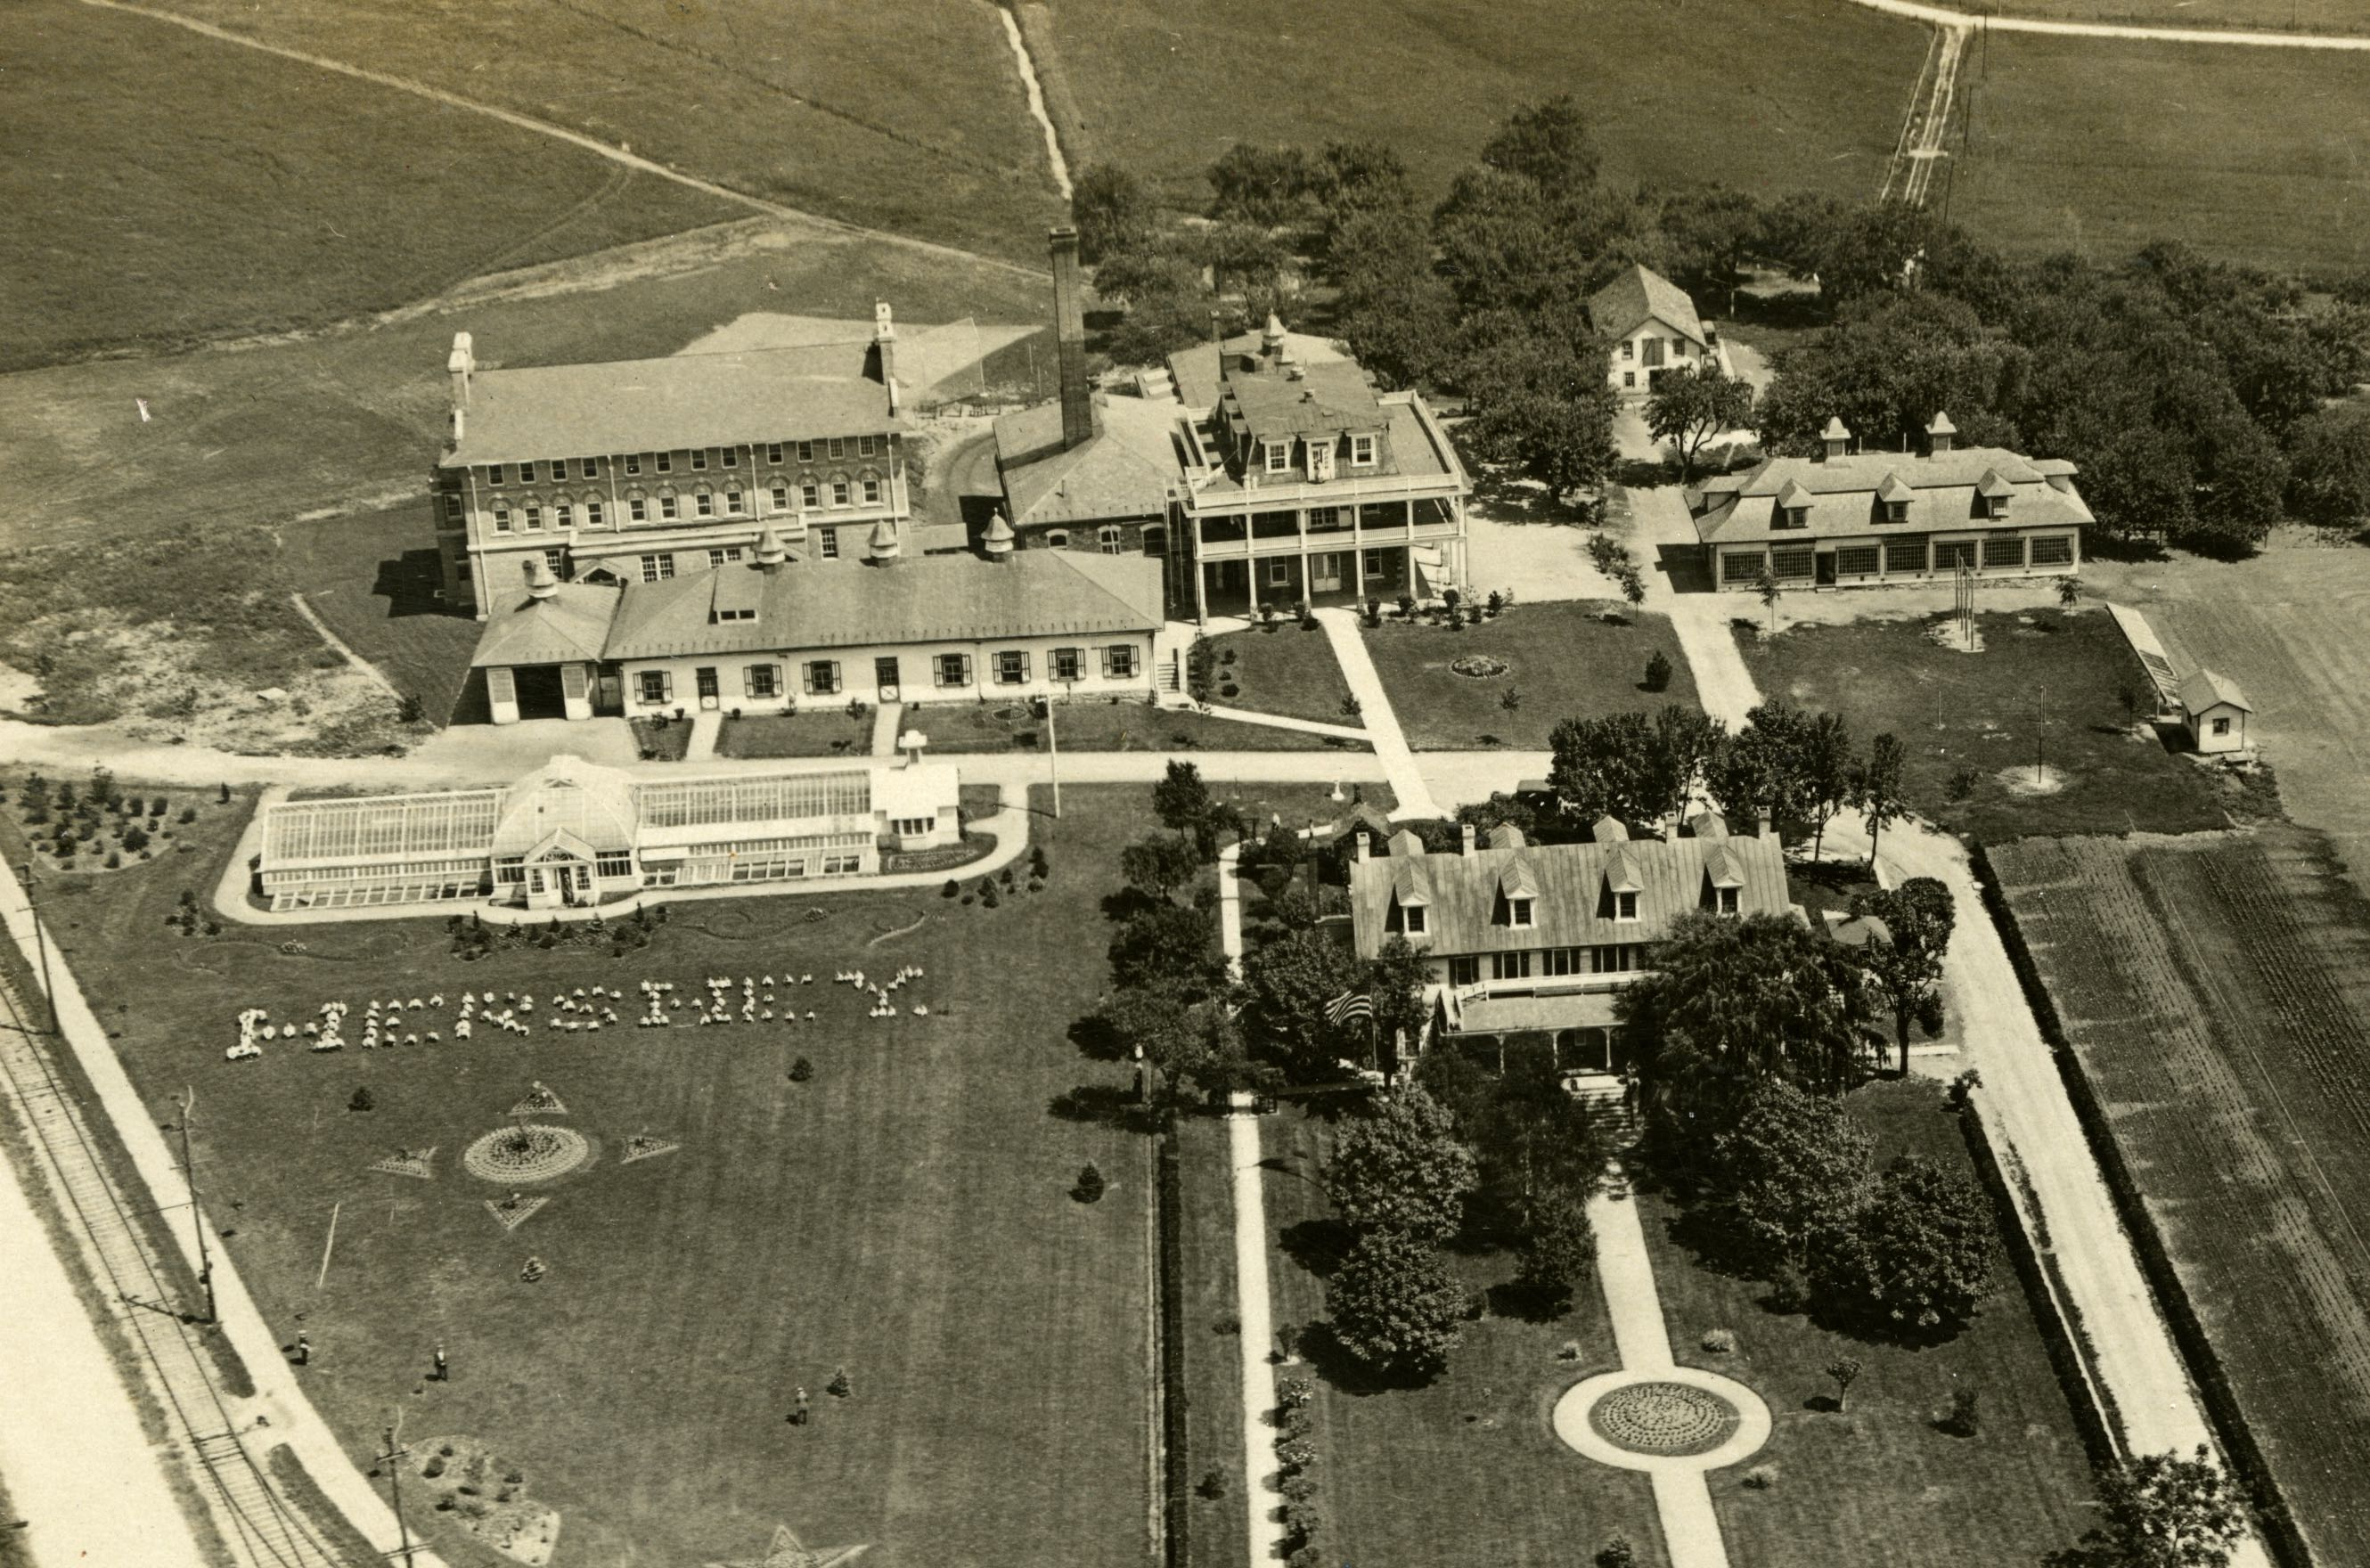 Aerial photo of campus in the early 1920s